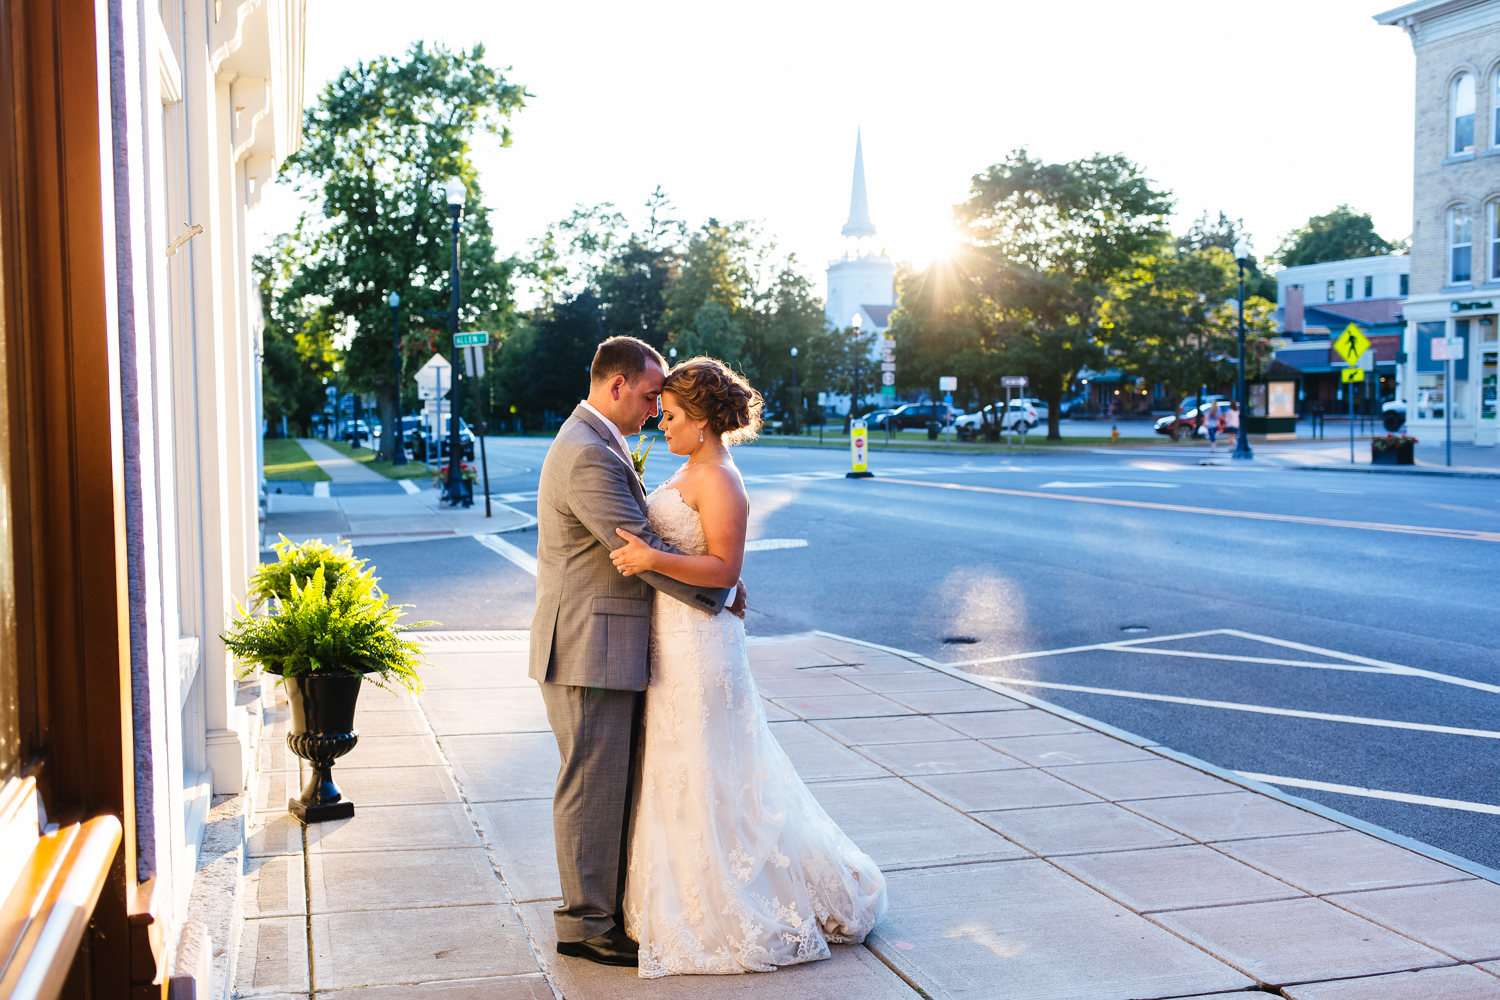 Bride and groom stand on the street corner at sunset in Cazenovia, NY.